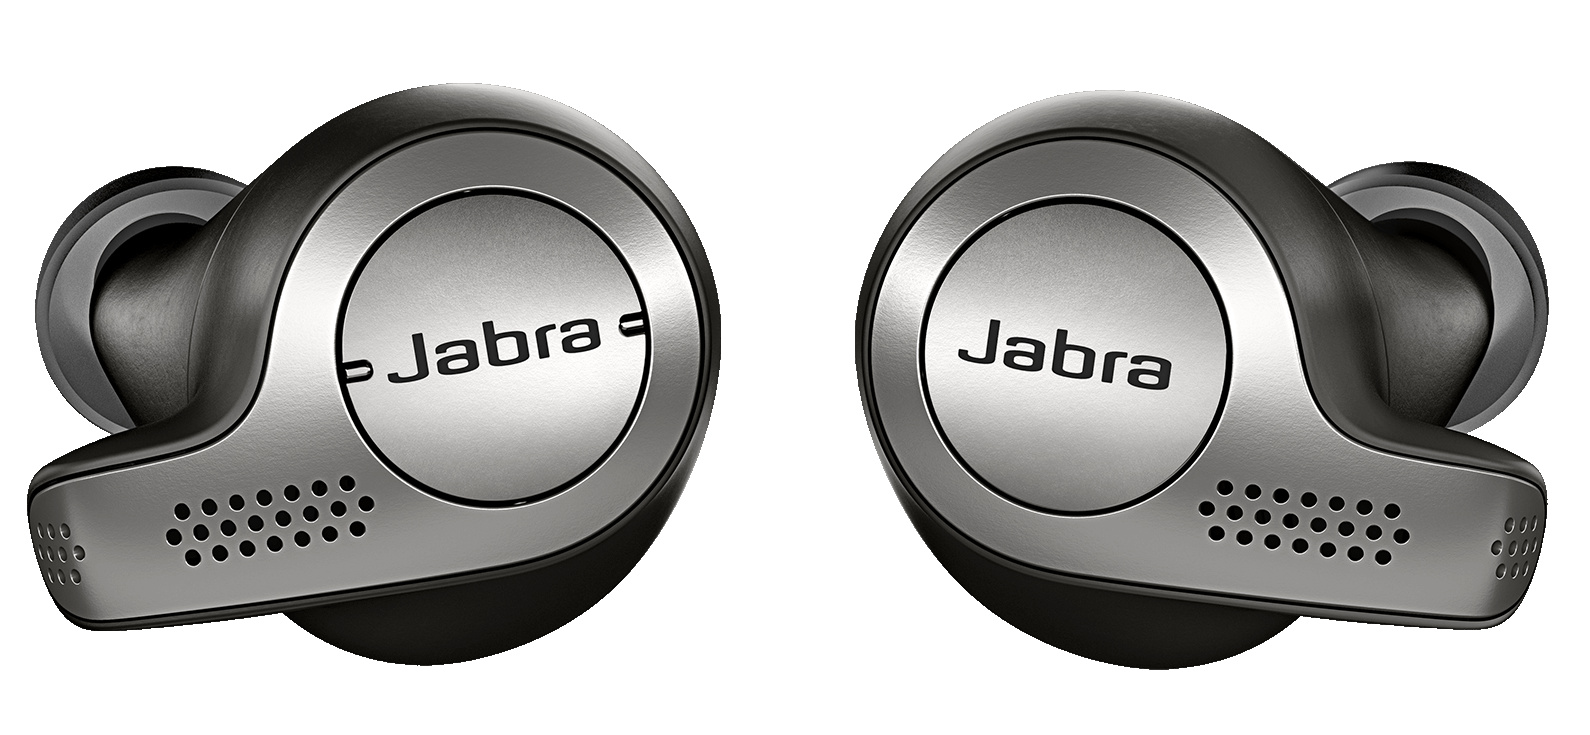 """9dc7dd37ad1 ... were demonstrating their latest products, which include the Jabra Elite  65 (pictured below), """"true wireless"""" earbuds (i.e. not wired together)  featuring ..."""